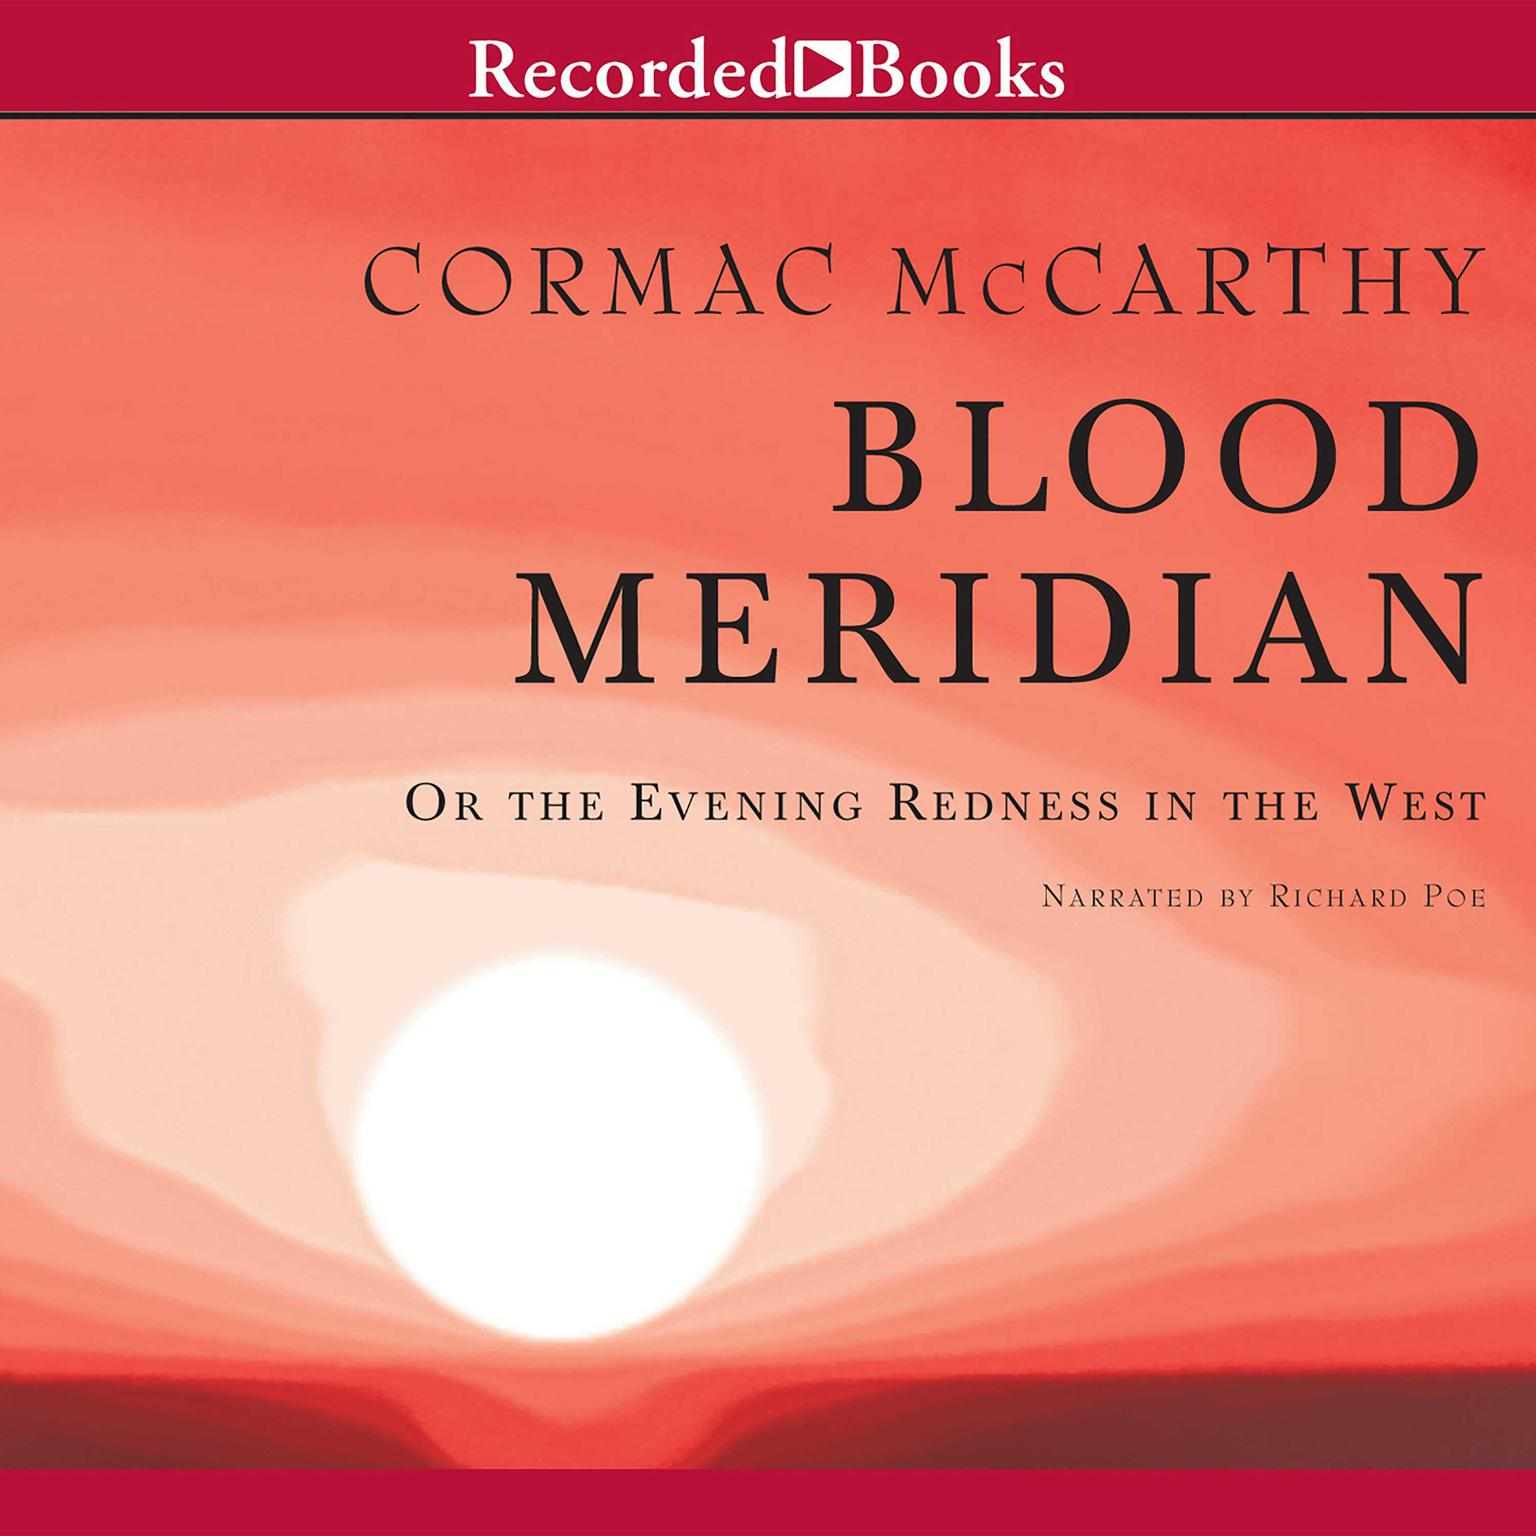 Printable Blood Meridian: Or the Evening Redness in the West Audiobook Cover Art